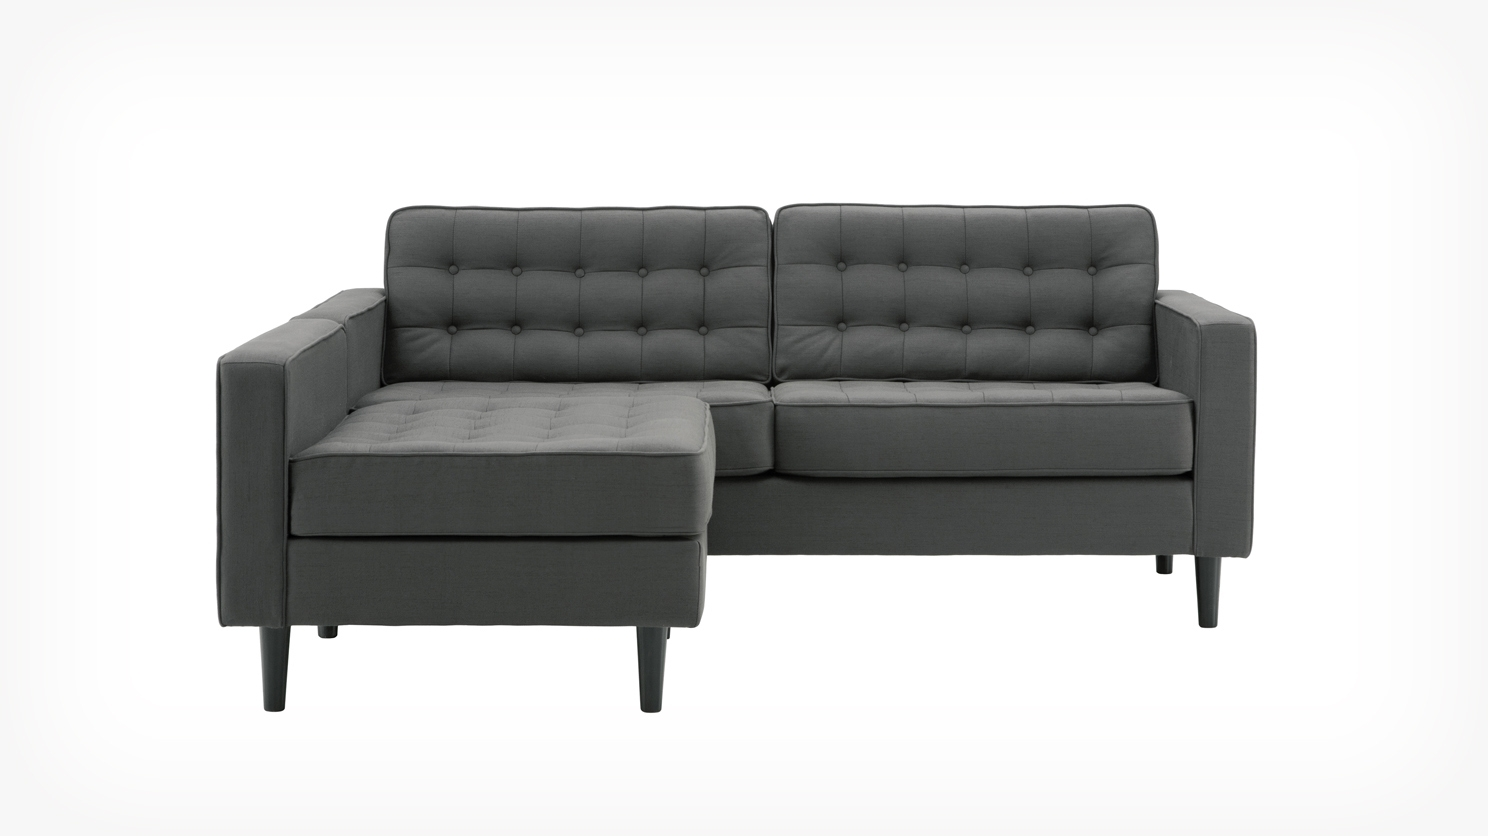 Reverie Apartment 2 Piece Sectional Sofa With Chaise – Fabric With Eq3 Sectional Sofas (View 14 of 20)